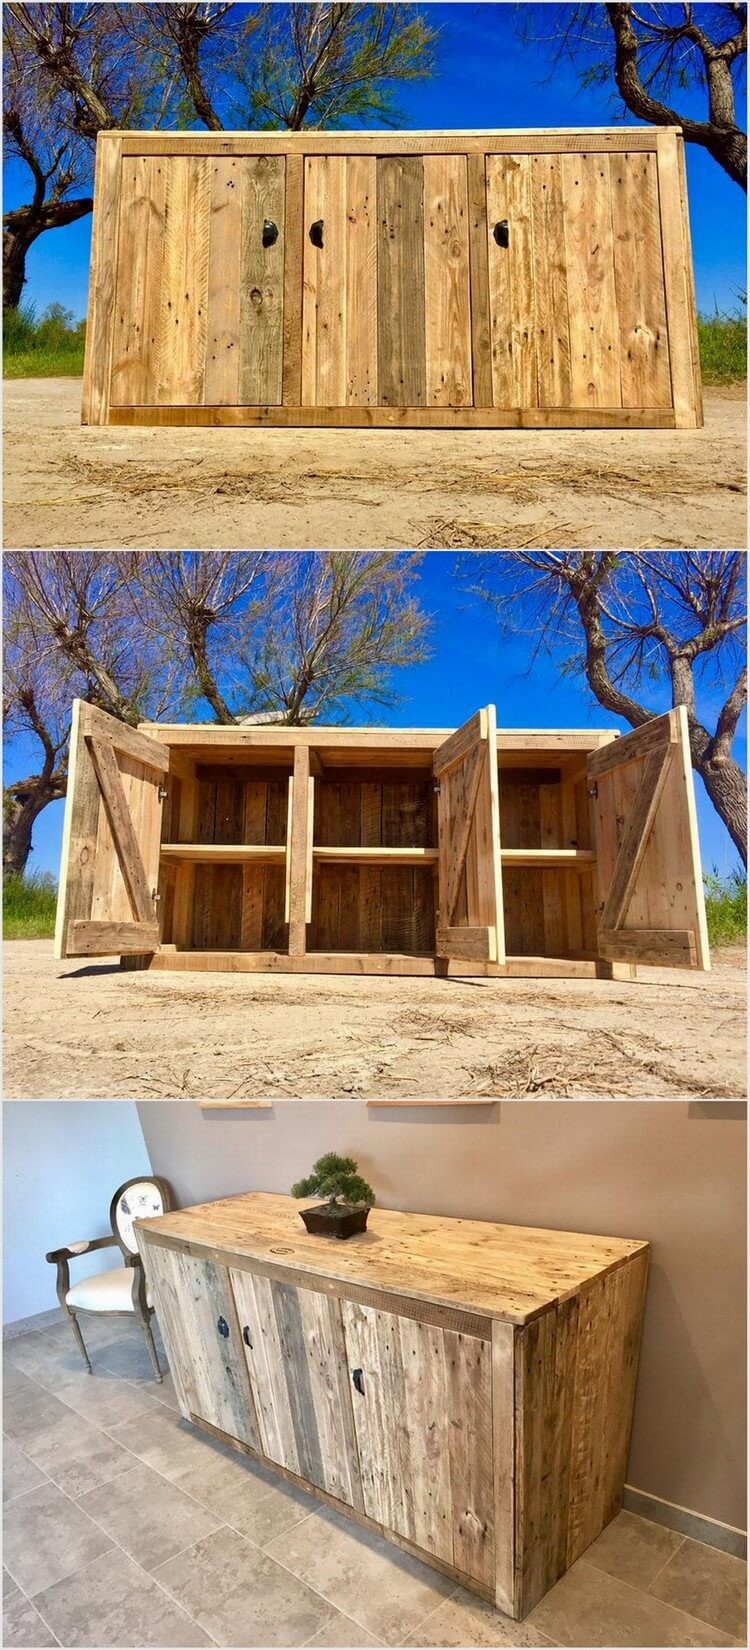 inspiring diy ideas with old wood pallets pallet wood projects. Black Bedroom Furniture Sets. Home Design Ideas